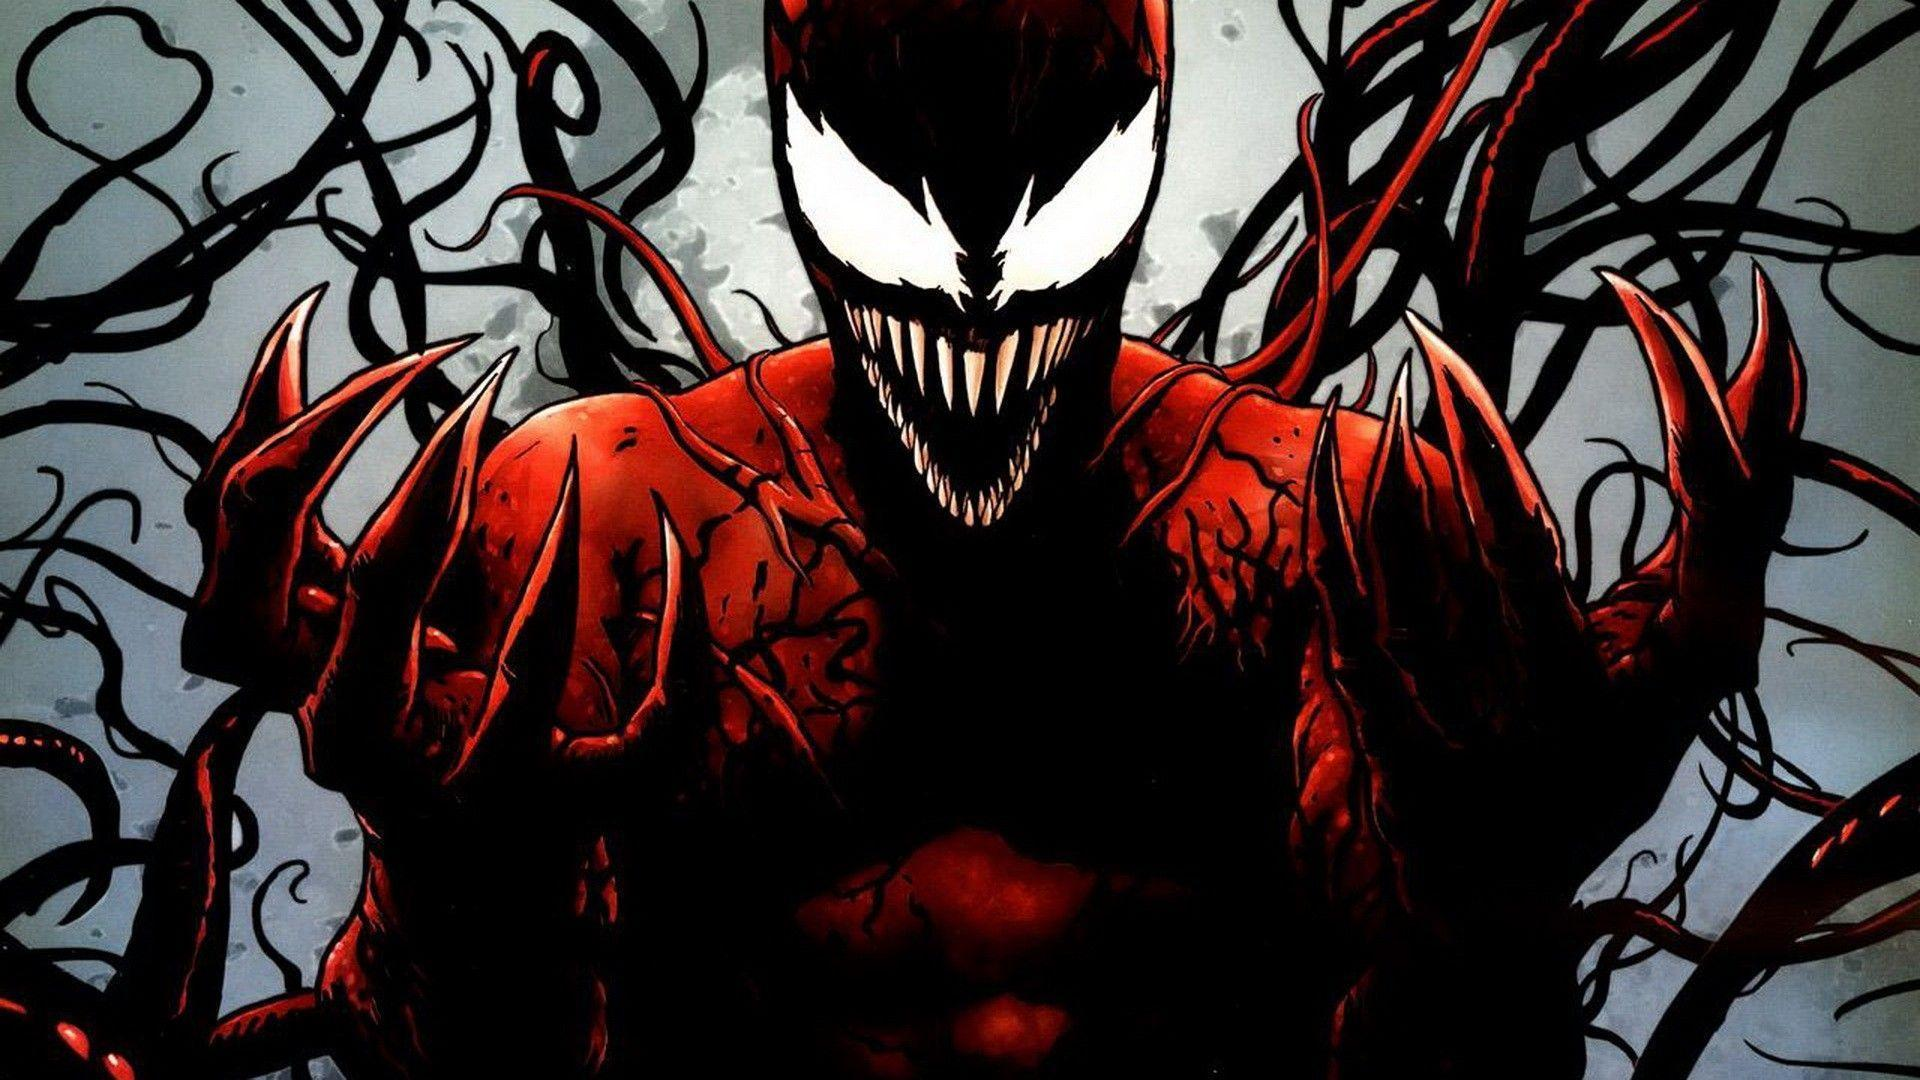 Carnage Wallpapers wallpaper, wallpaper hd, background desktop ...